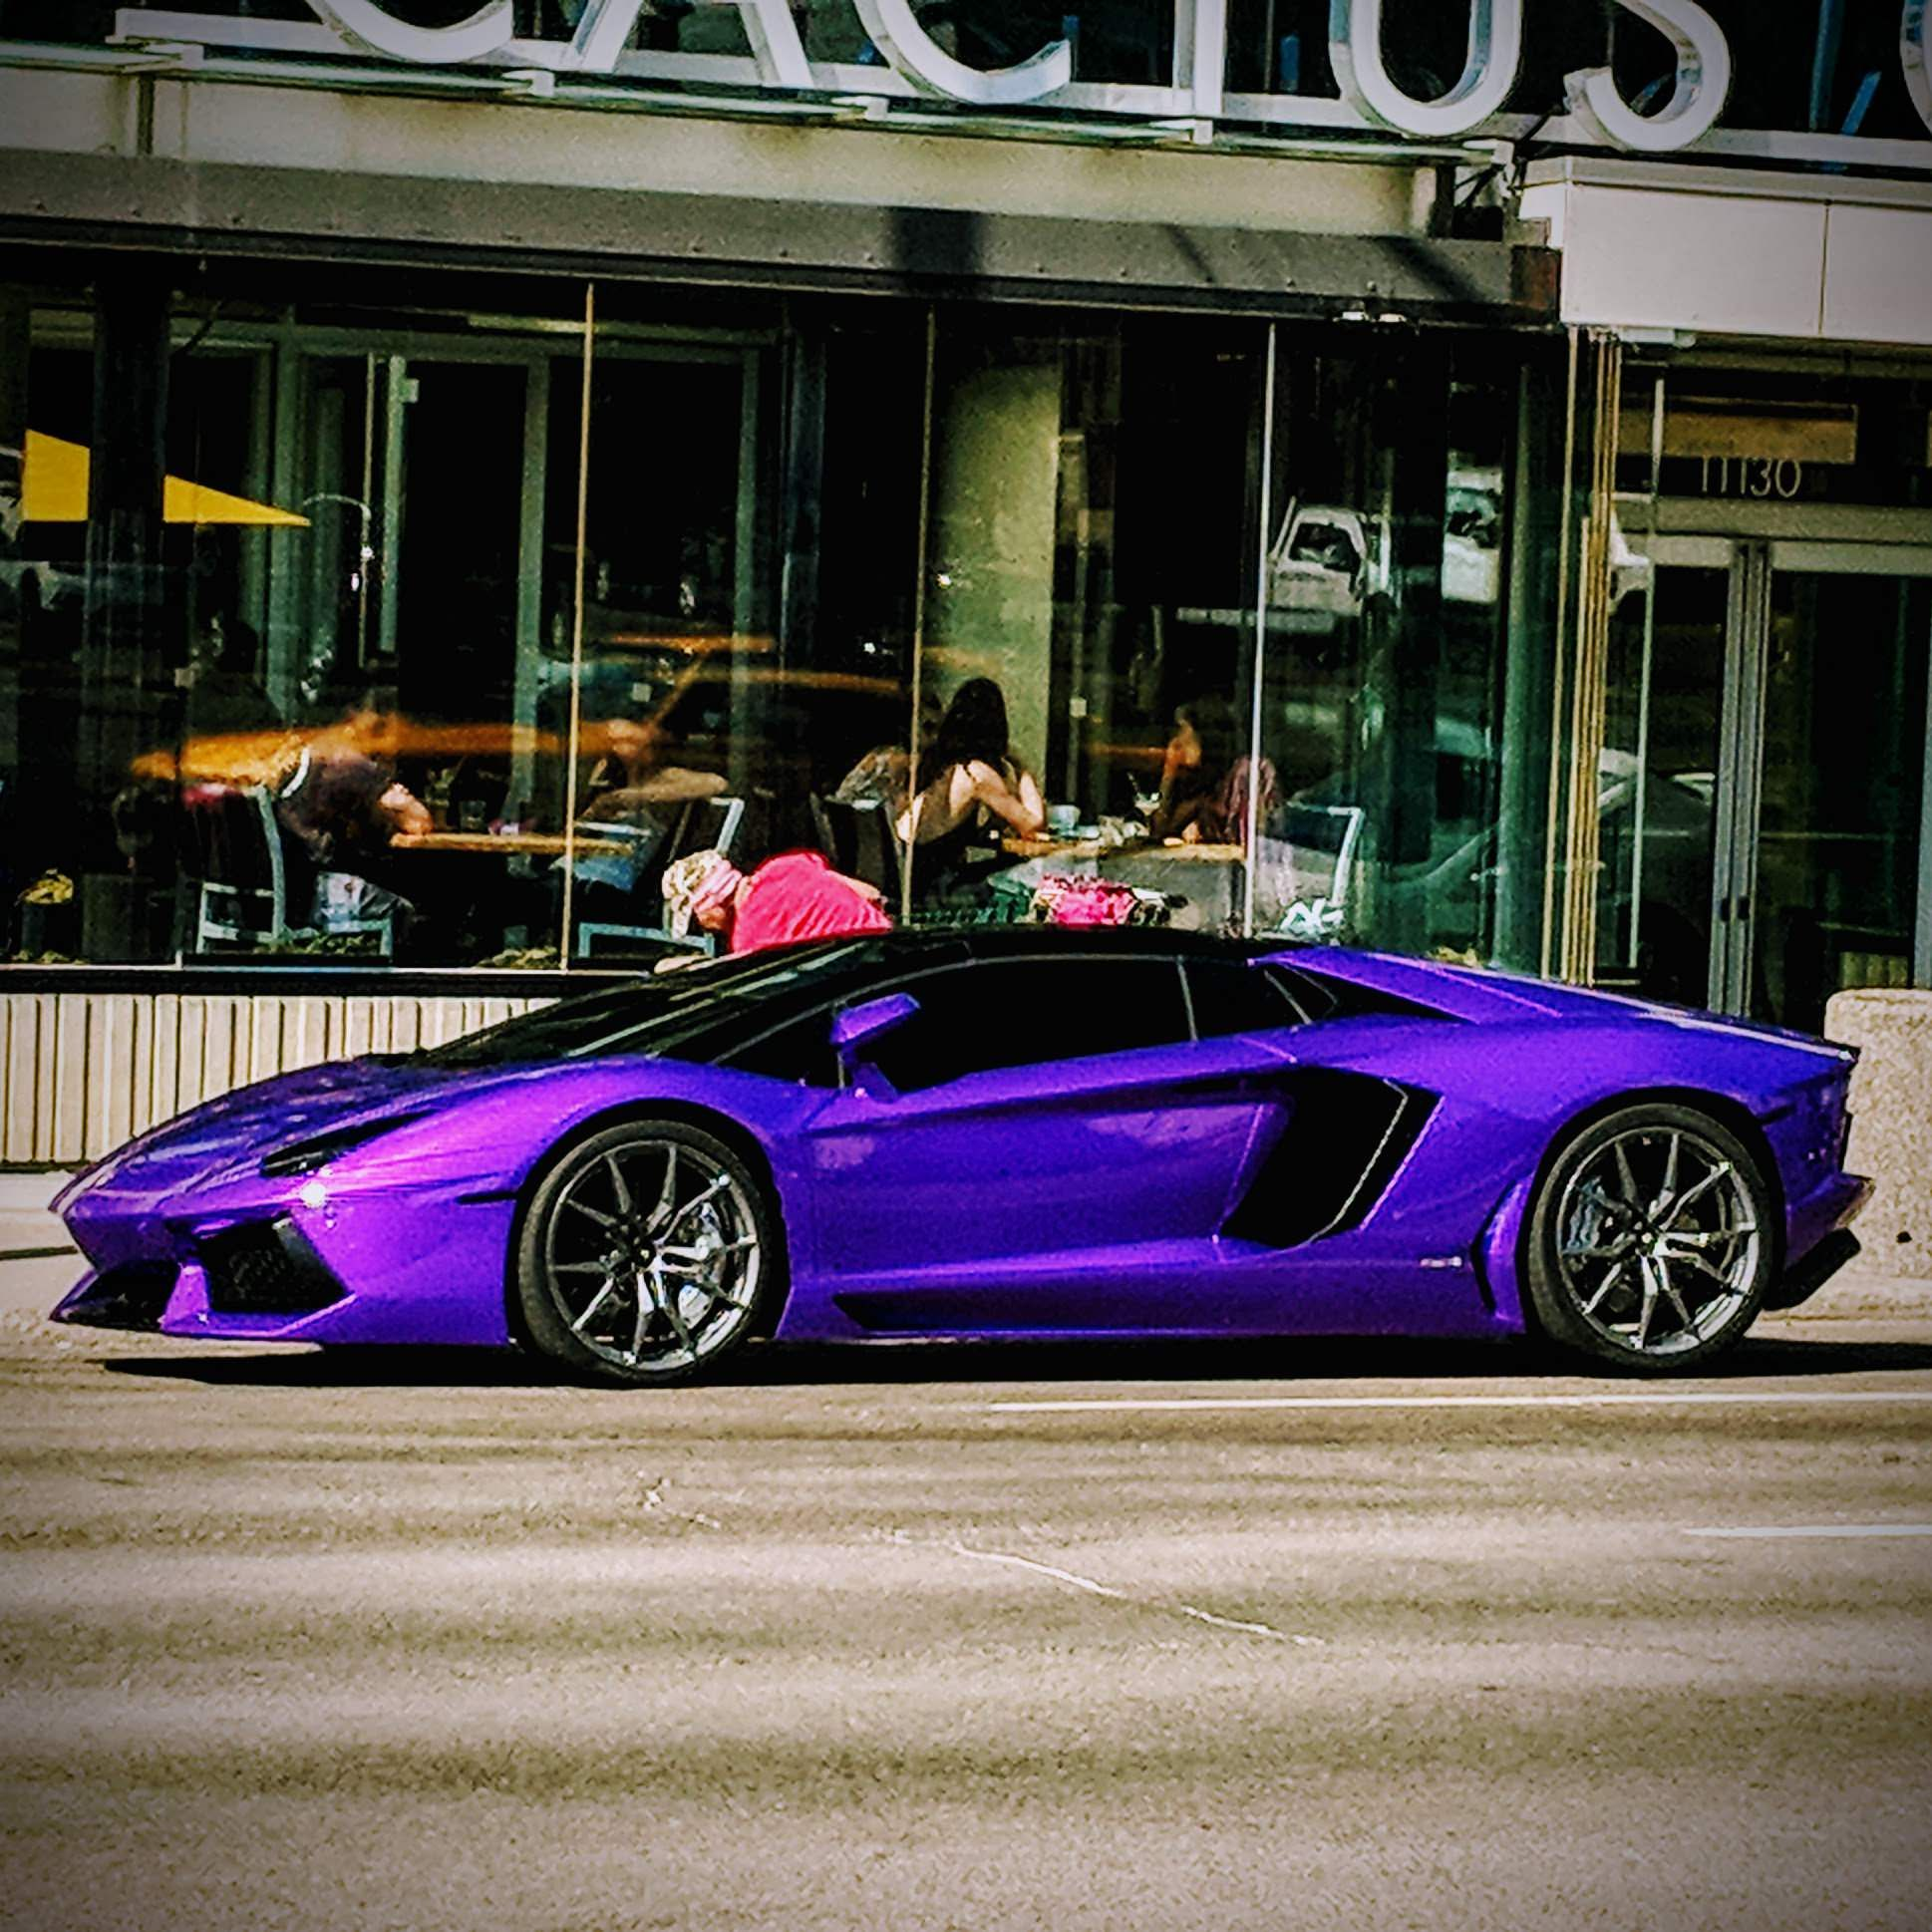 Got That Purple Lamborghini Lurkin Cars Lamborghini Cars